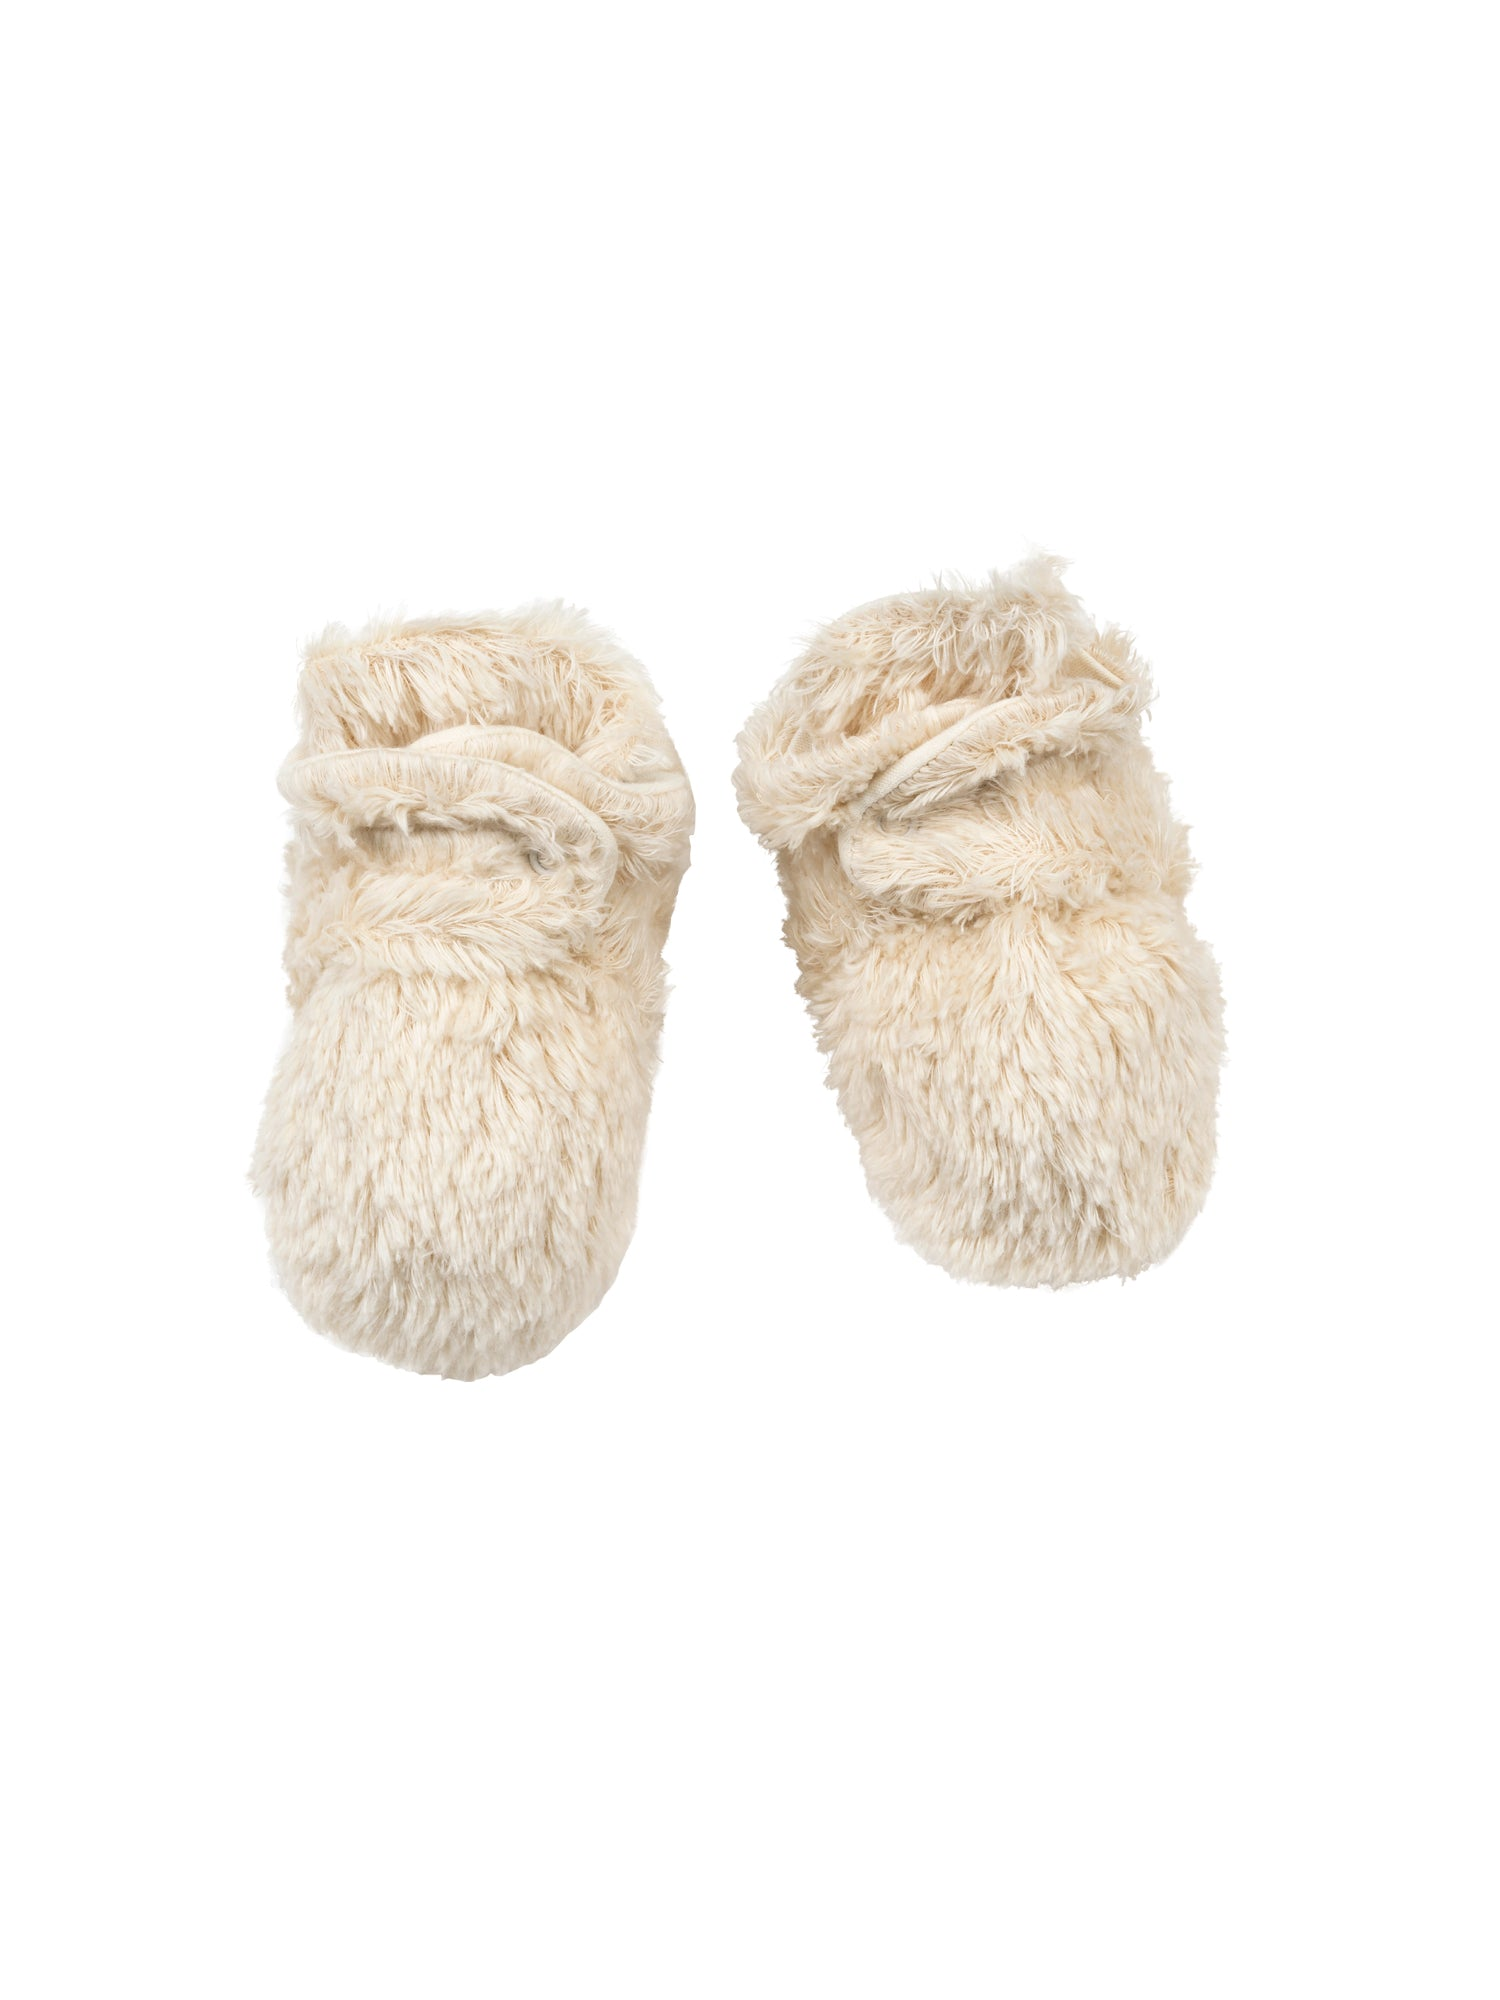 Faux Fur Baby Gift Set